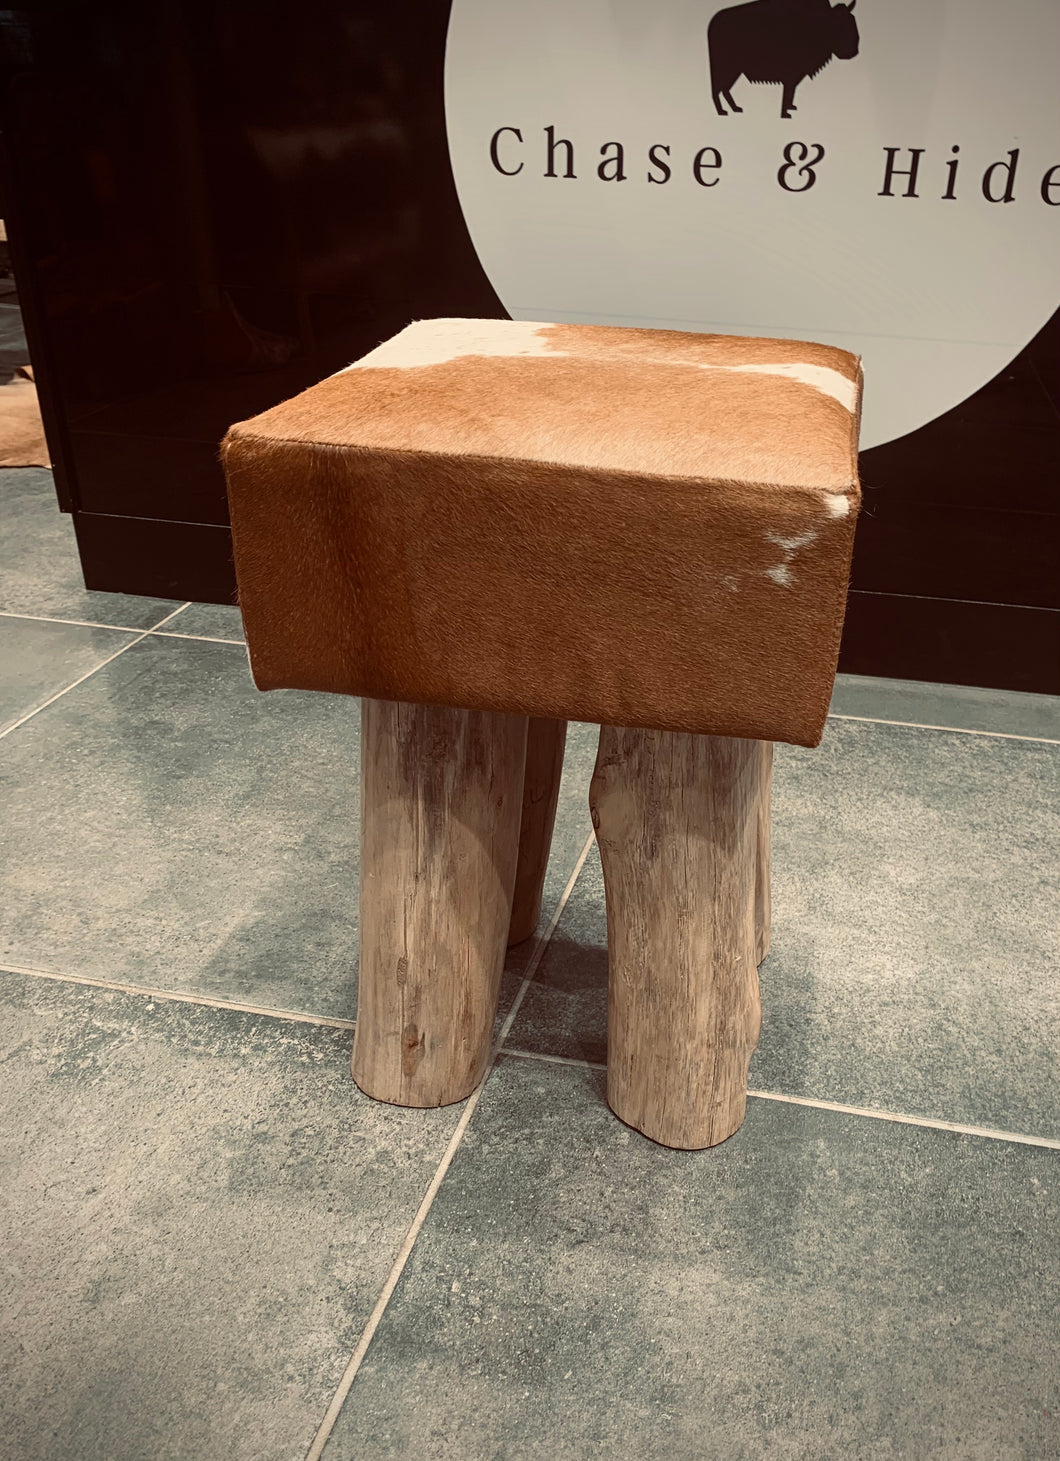 Hide and wood stool #892